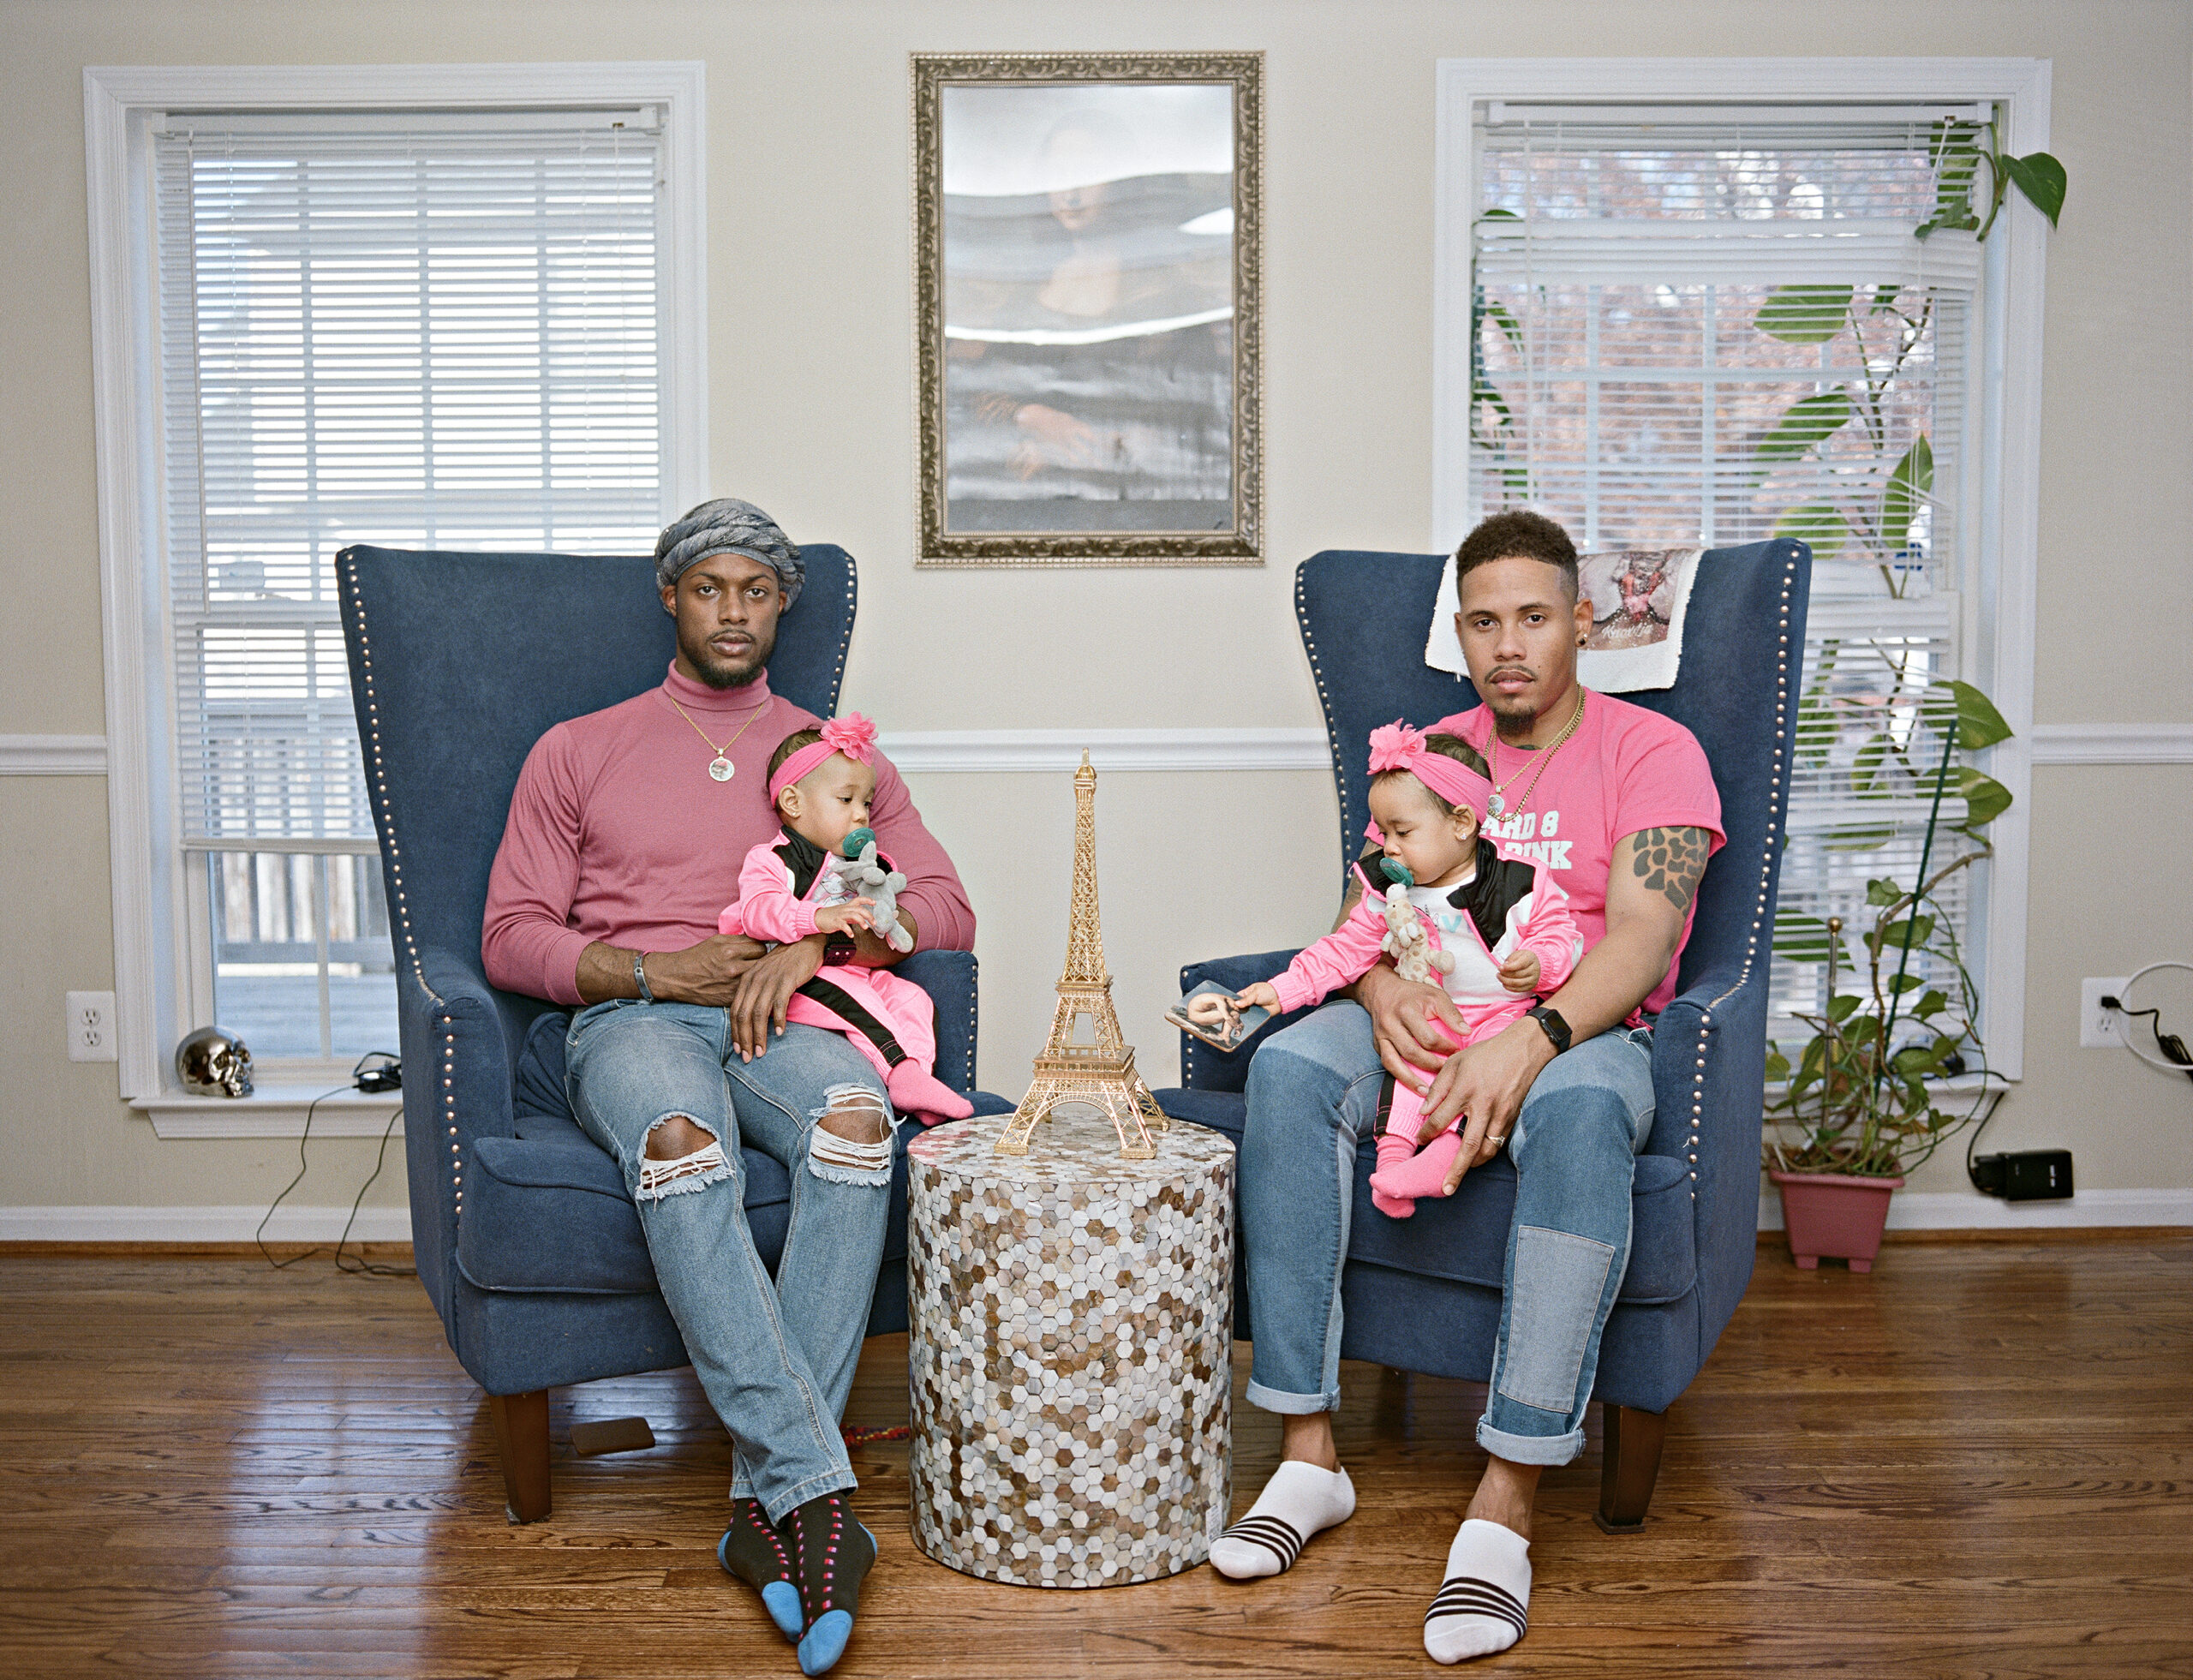 These amazing photos of gay dads and their children show love makes a family, not gender